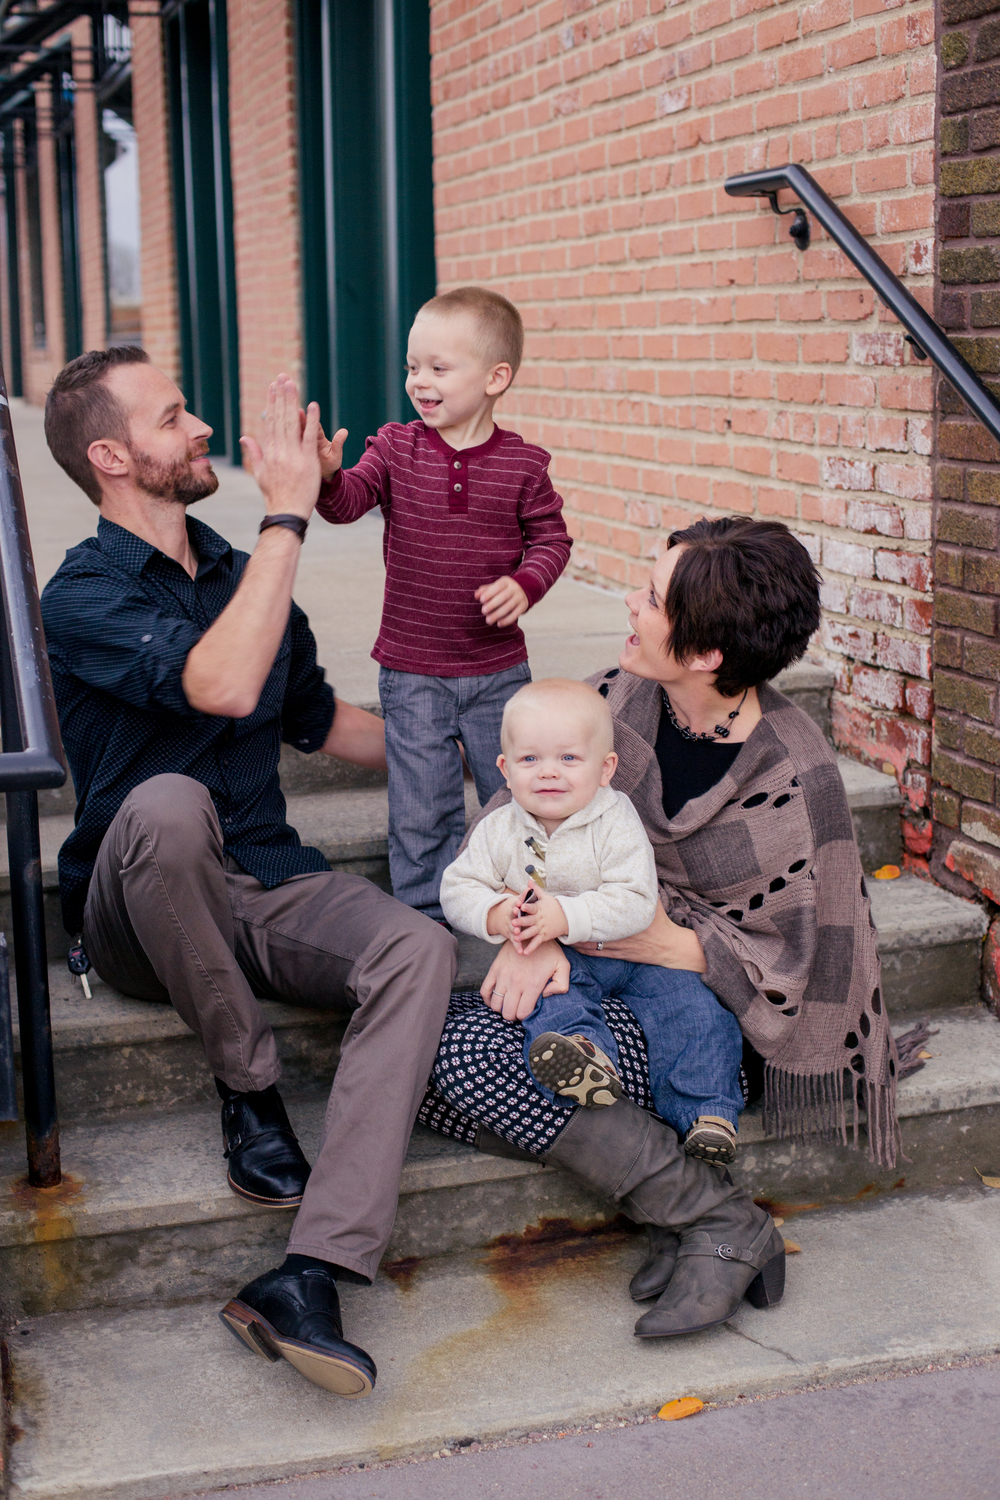 Jason, Nicole and their two kids: Finley and Emmett